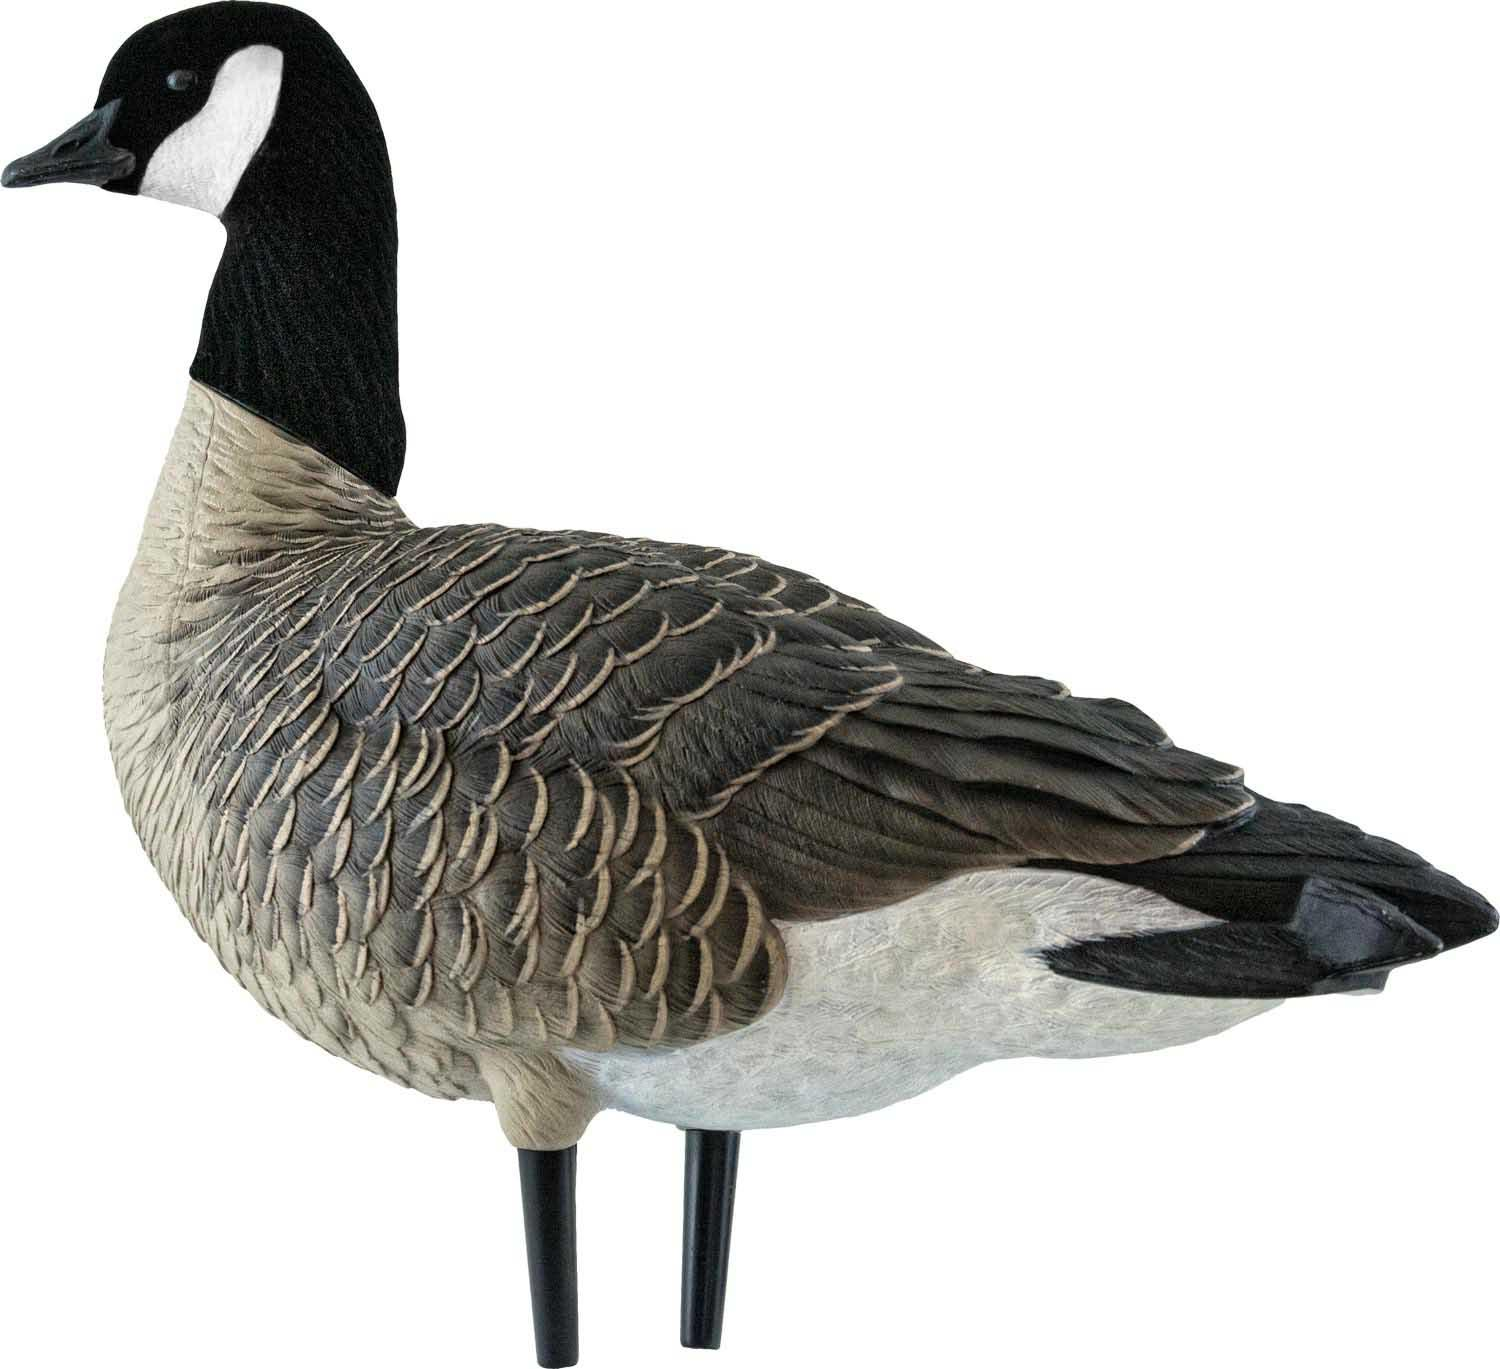 Avian-X AXF Outfitter Lesser Pack Fully Flocked Decoys, 12 Pack with Slotted Decoy Bag_2.jpg